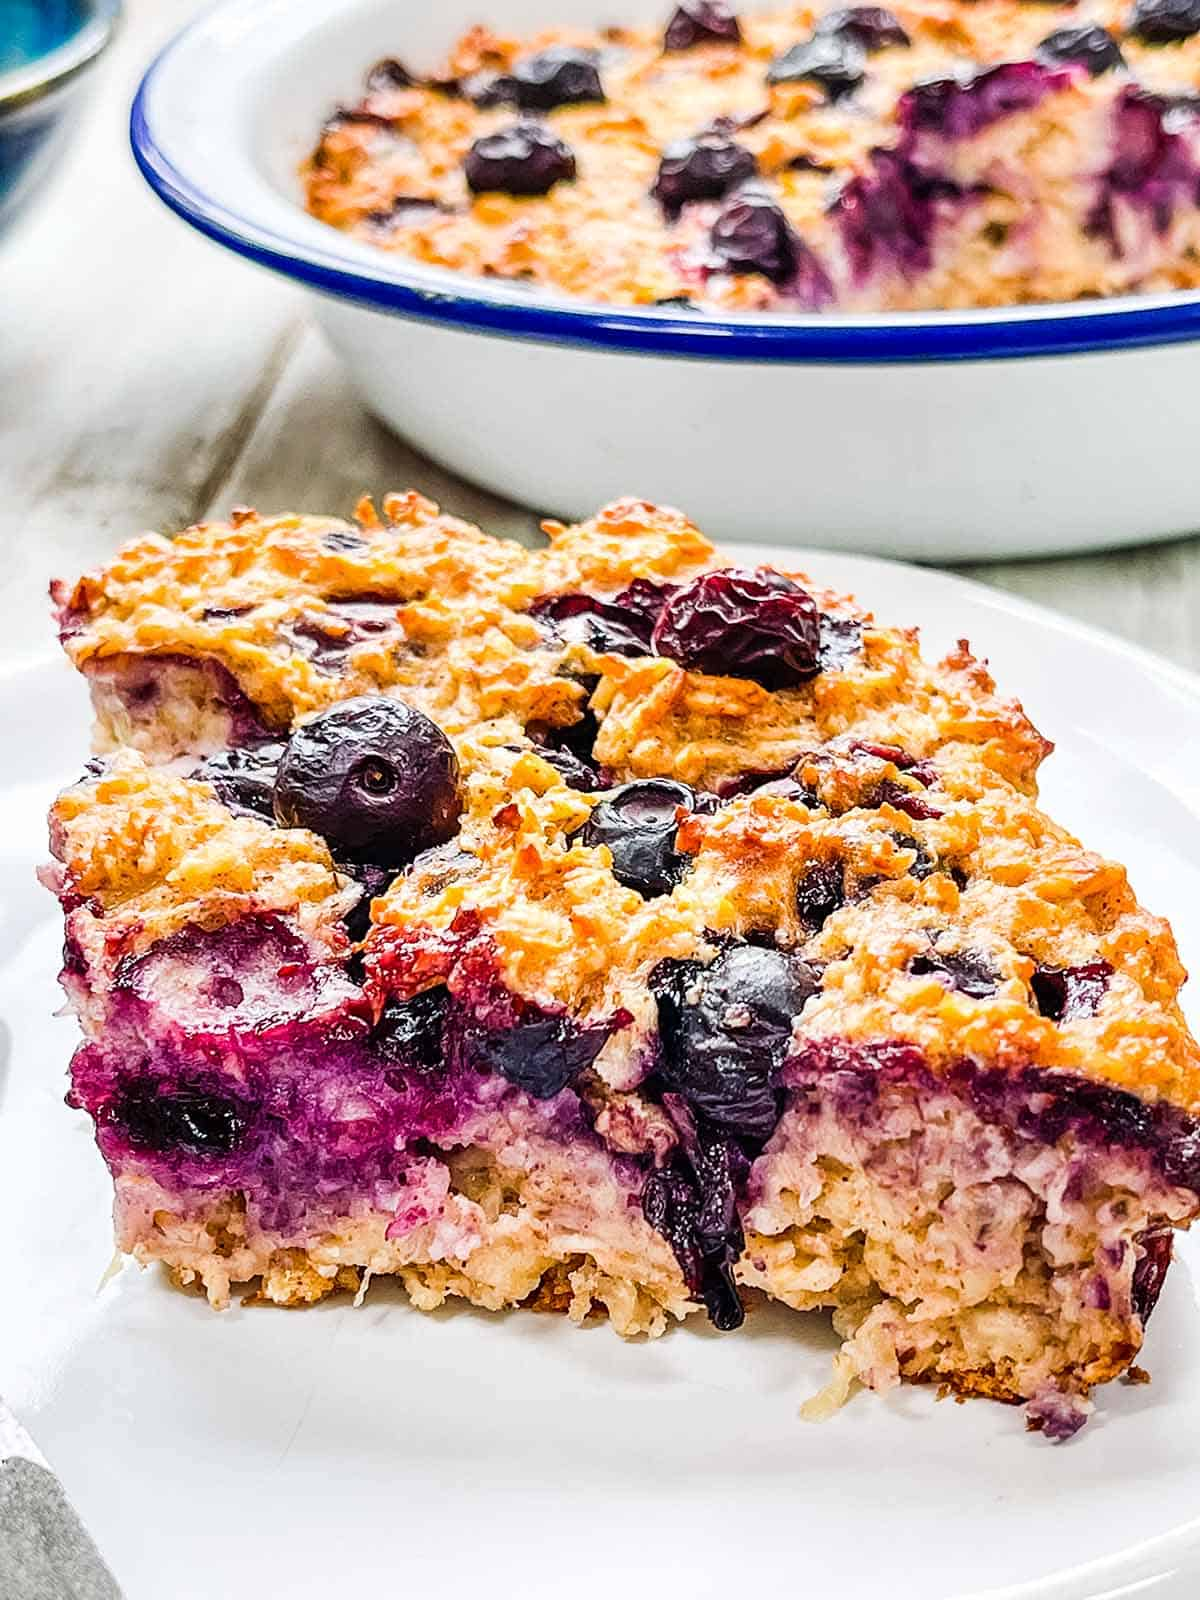 A white plate on a white table with blueberry baked oatmeal.